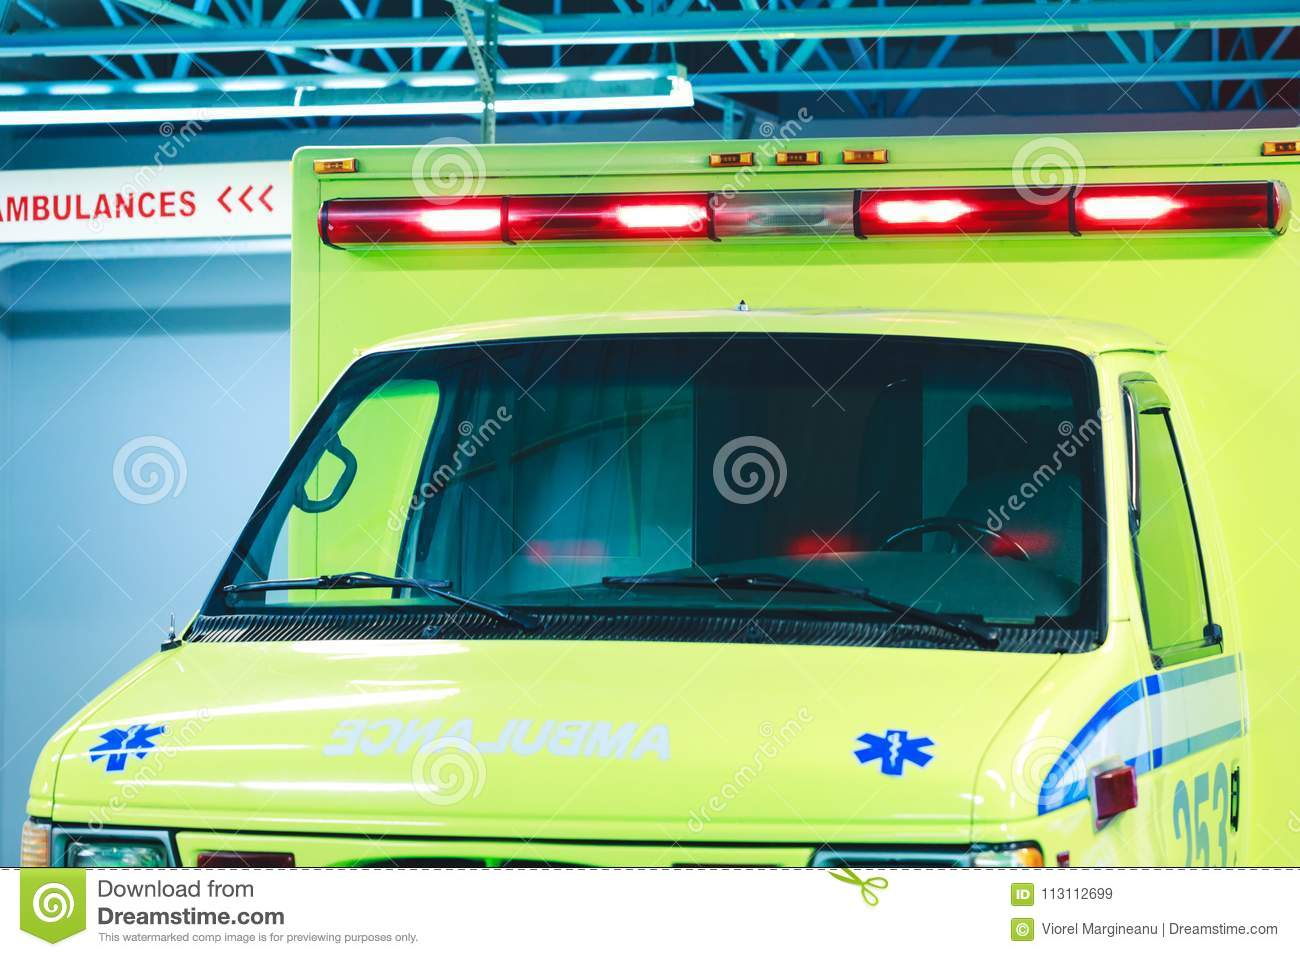 Montreal, Canada – March 25, 2018: Canadian ambulance car with